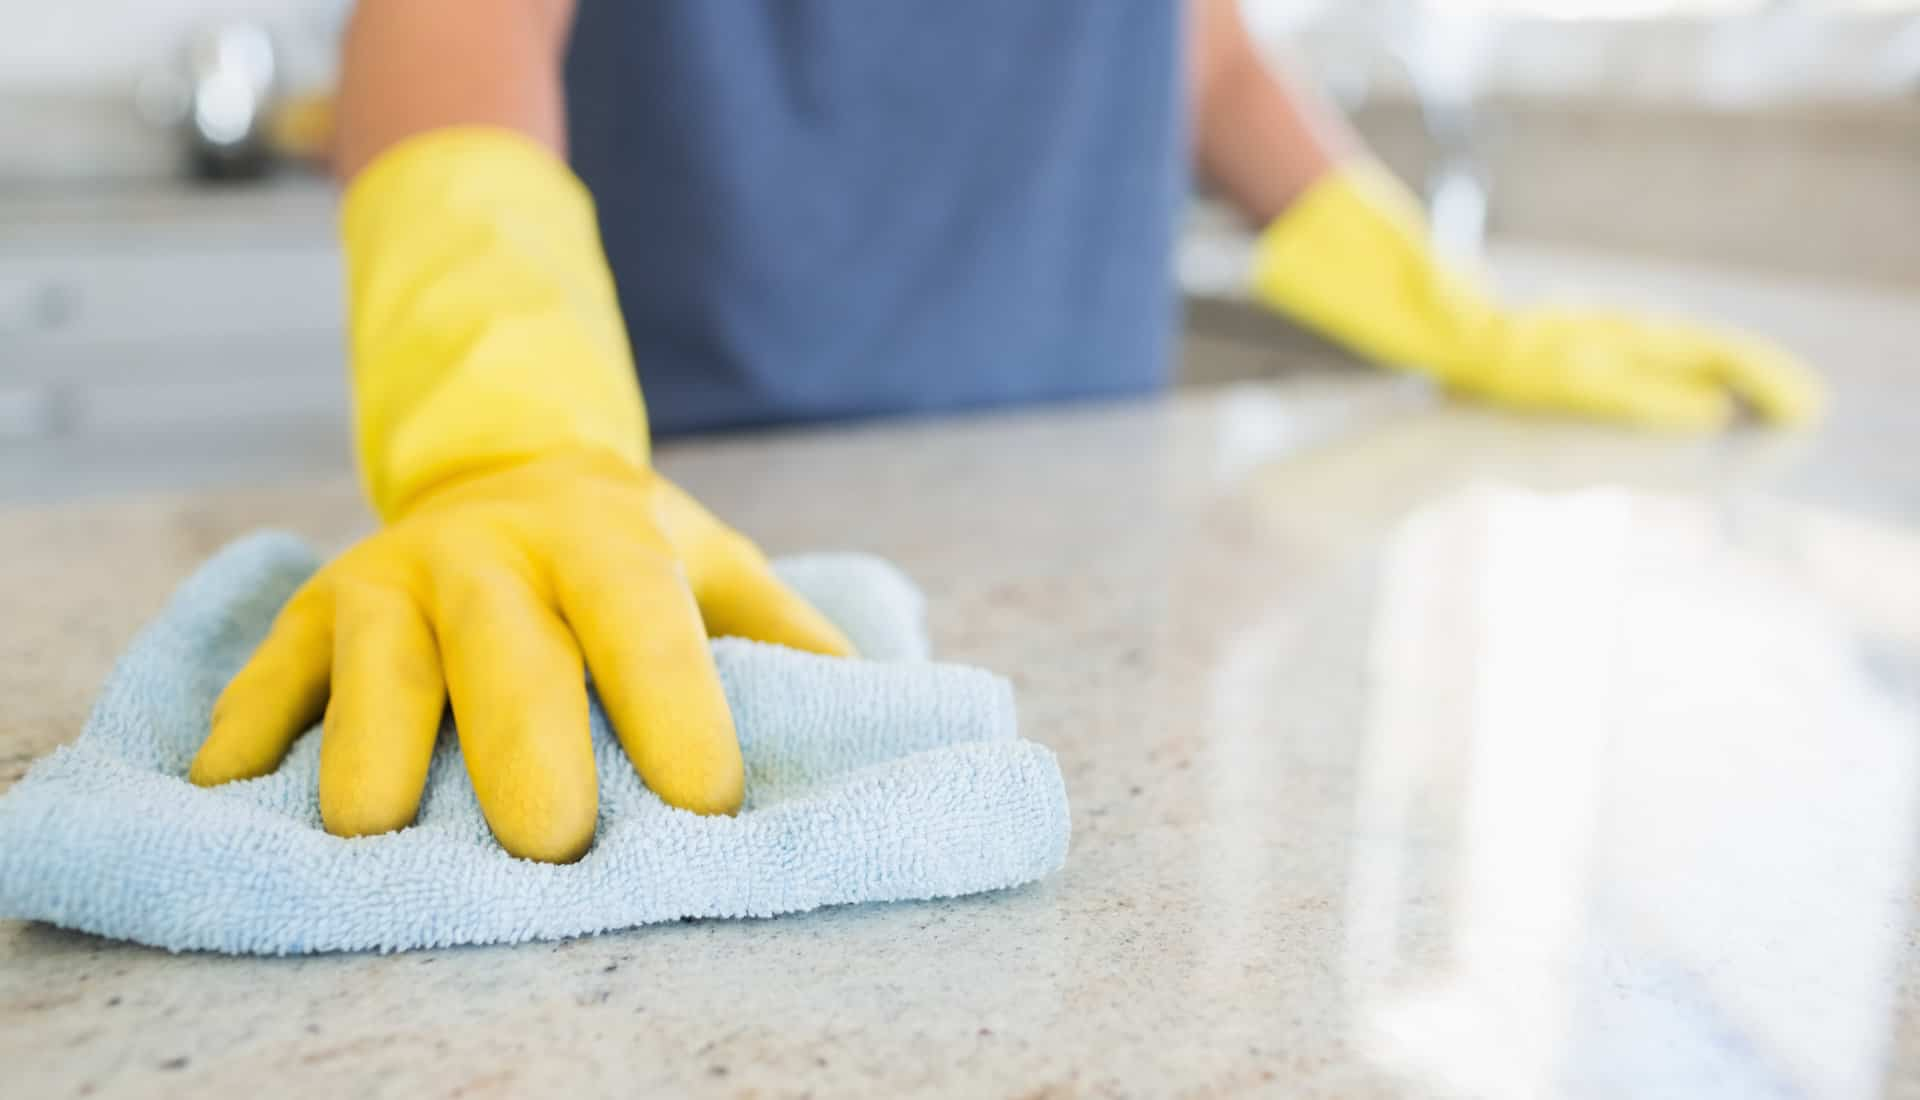 Wiping Kitchen Counter